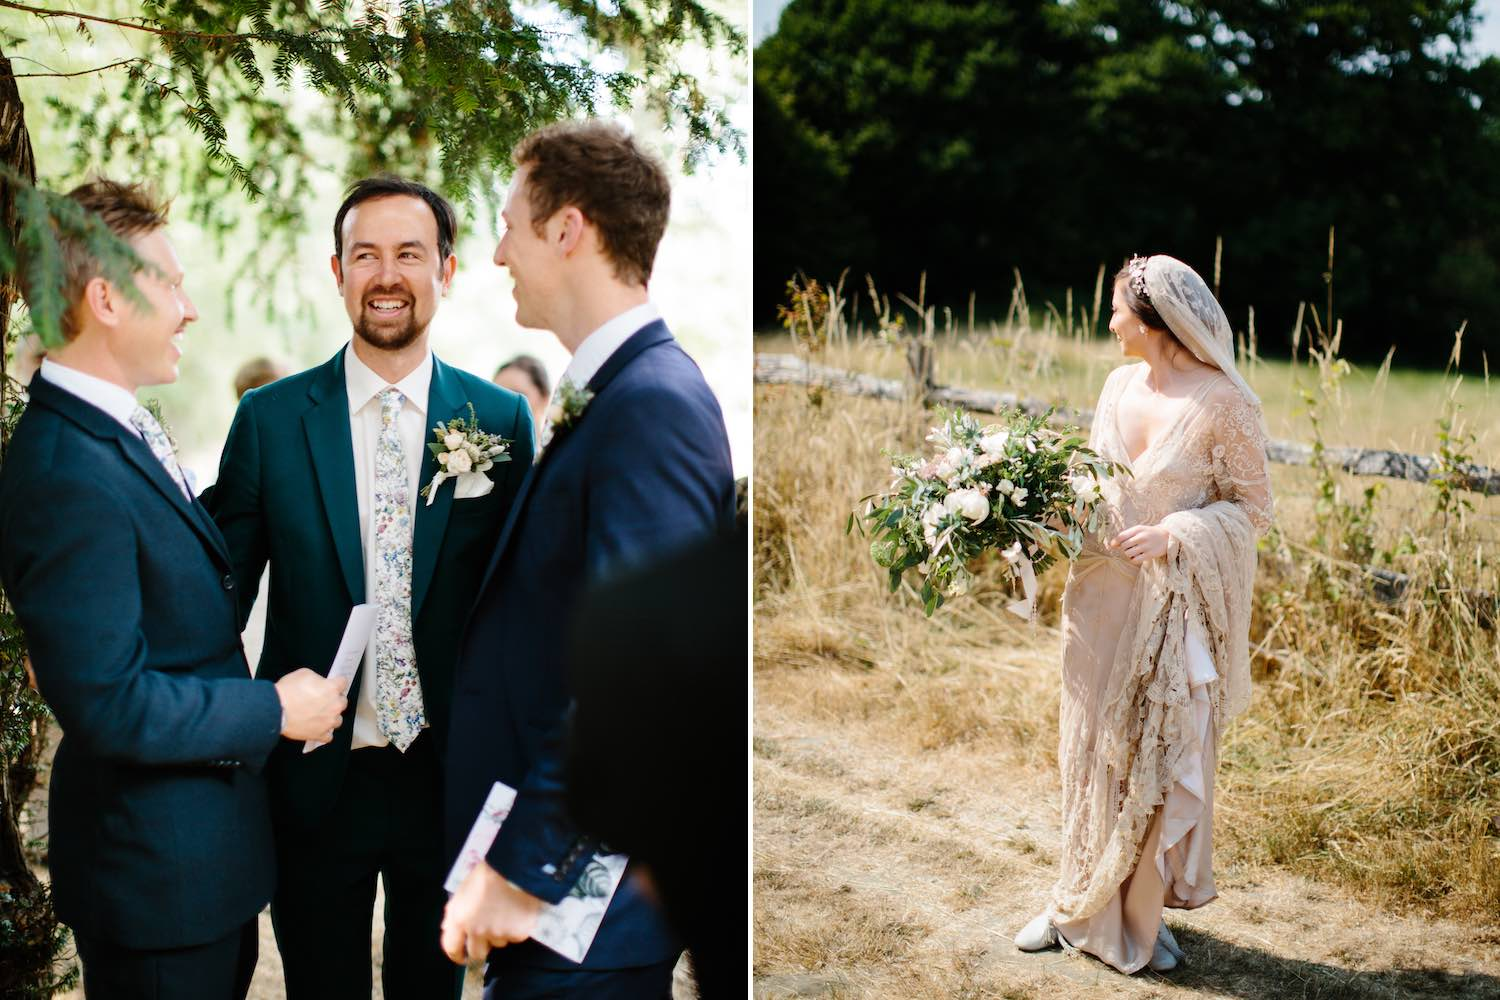 Grooms outside church and bride holding flowers in summer field